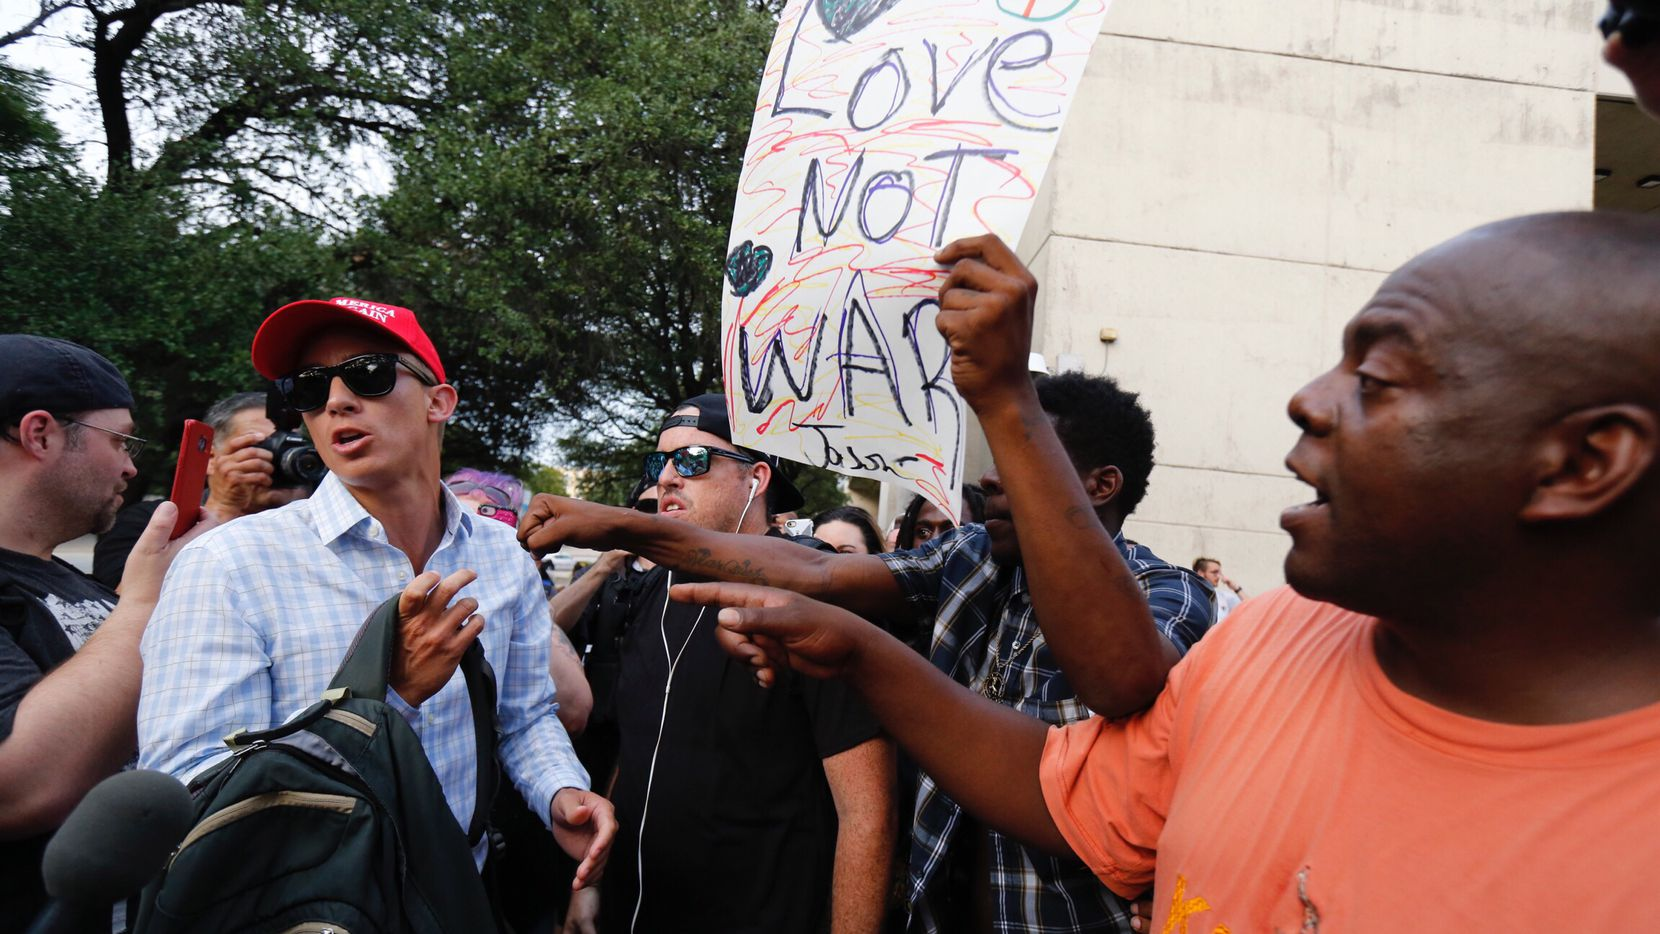 Kenyan Mark Wagema of Dallas (right) confronts a Trump supporter who chose not to identify himself  before the March Against White Supremacy rally at Pioneer Park Cemetery in downtown Dallas, Saturday, August 19, 2017.